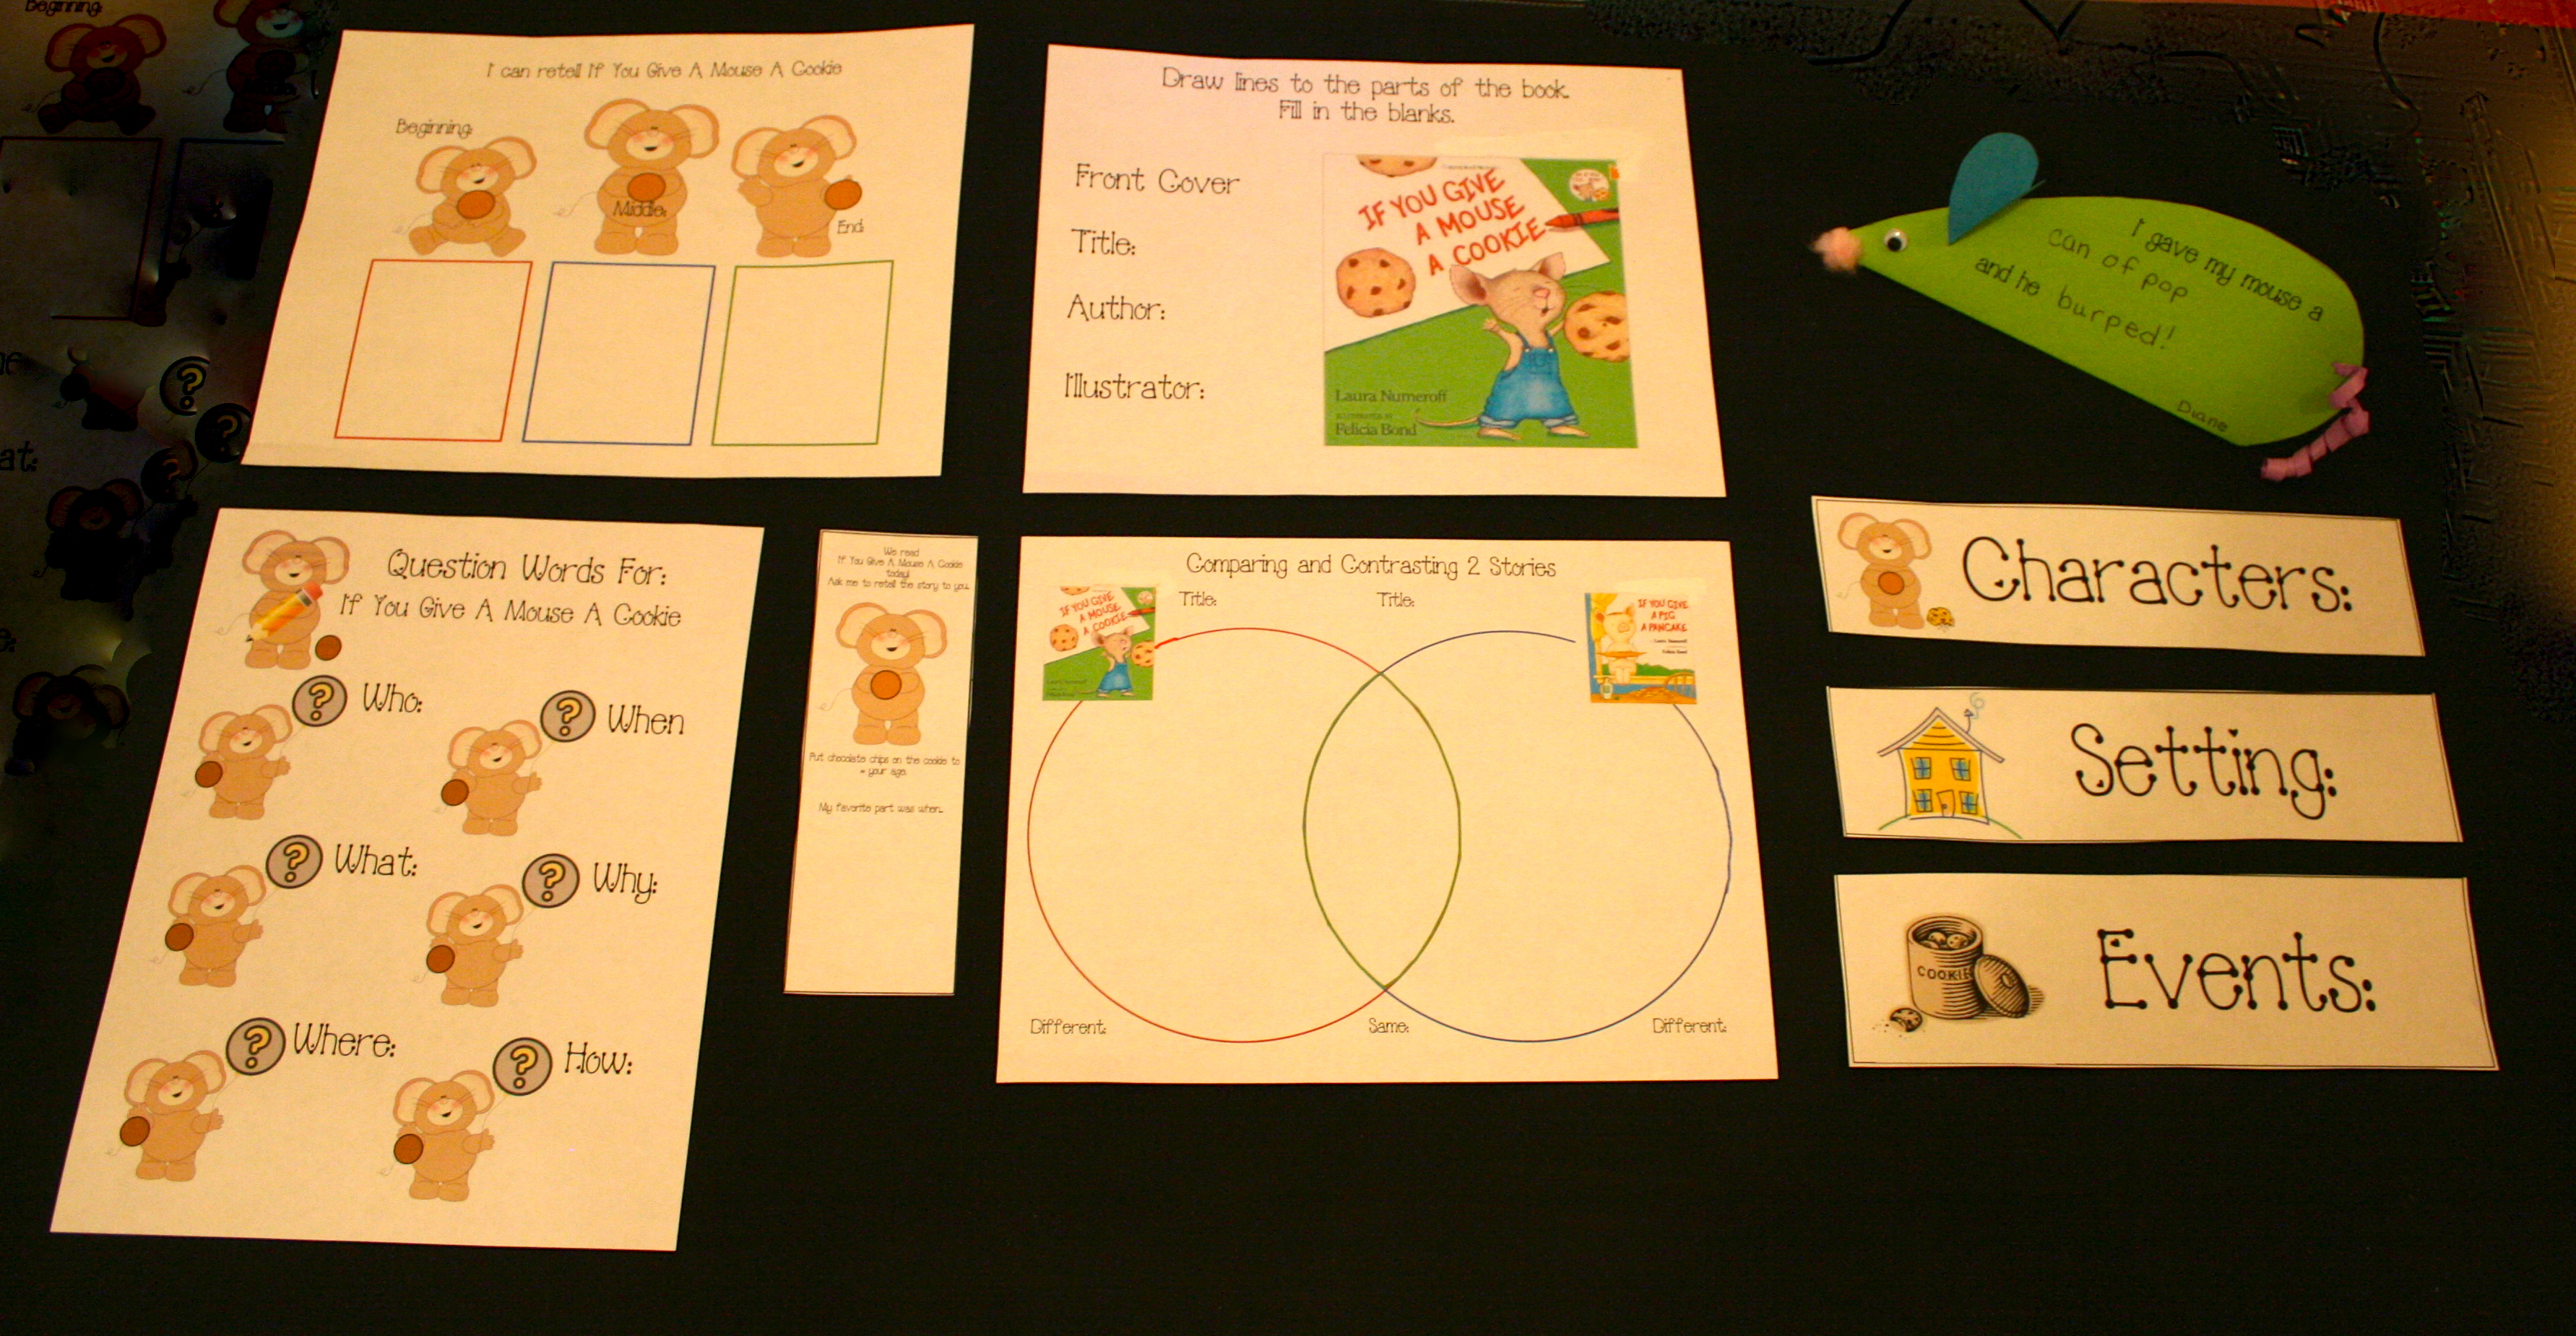 if you give a mouse a cookie activities, if you give a mouse a cookie lessons, if you give a mouse a cookie ideas, lessons for the first week of school, writing prompts for september, daily 5 activities for september, mouse activities, mouse crafts, mouse art projects, if you give a pig a pancake activities, kindergarten common core lessons, kindergarten common core activities, 1st grade common core lessons, 1st grade common core activities, comparison lessons, comparison activities, venn diagram activities, venn diagram template, comparing stories with a venn diagram,